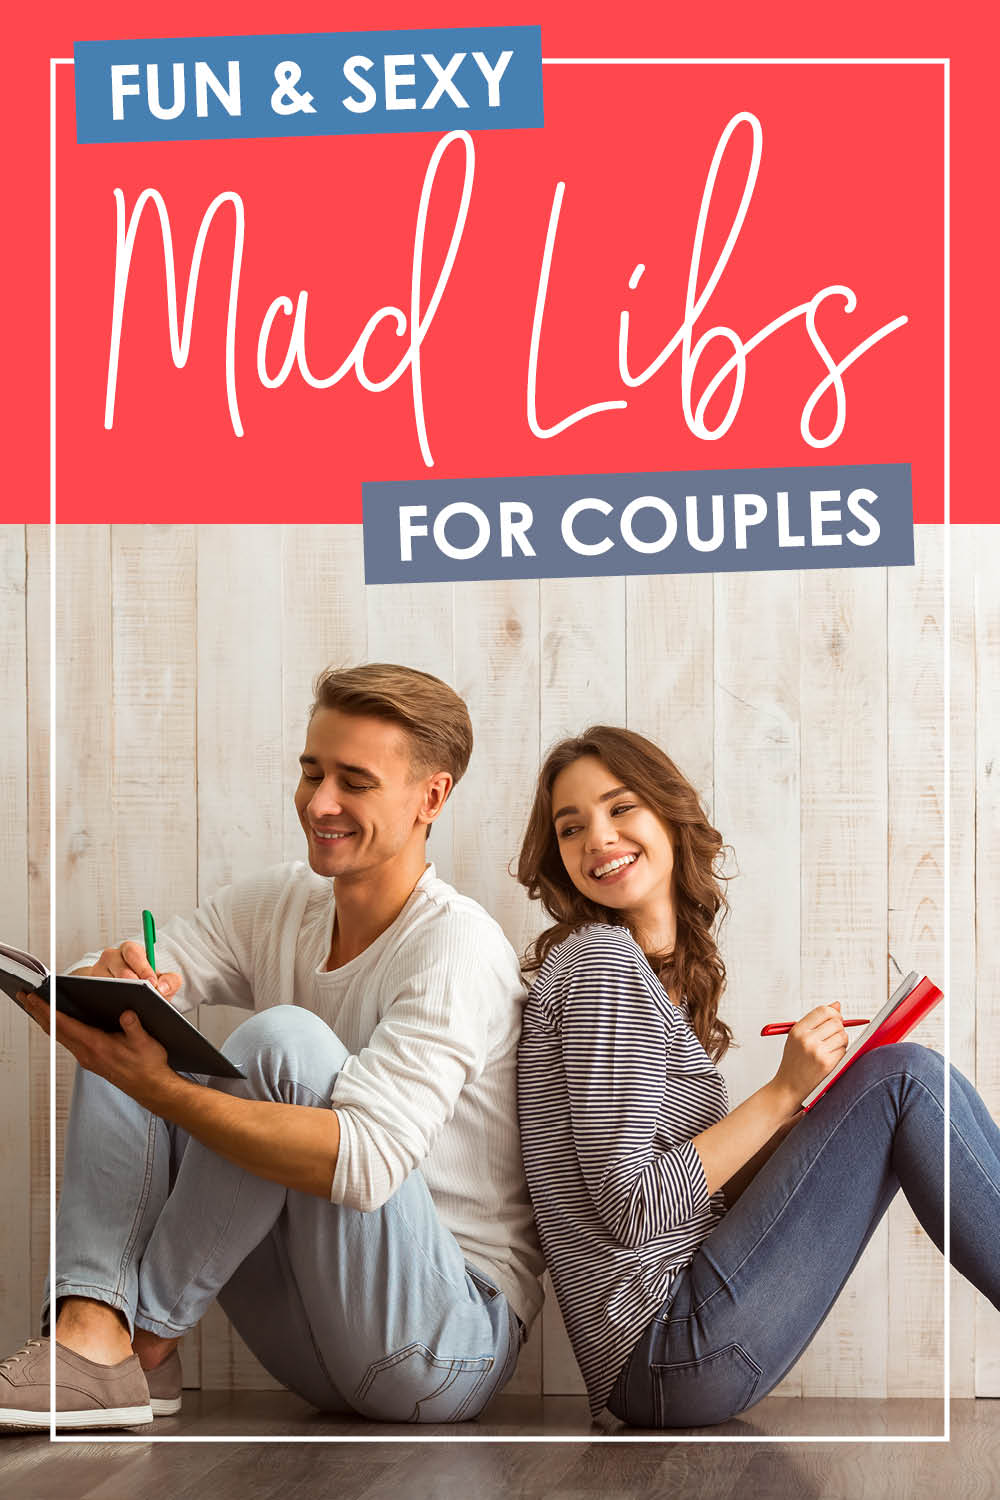 Turn up the heat in your marriage--while laughing like crazy together with sexy mad libs for adults! #madlibs #madlibsforadults #printablemadlibs